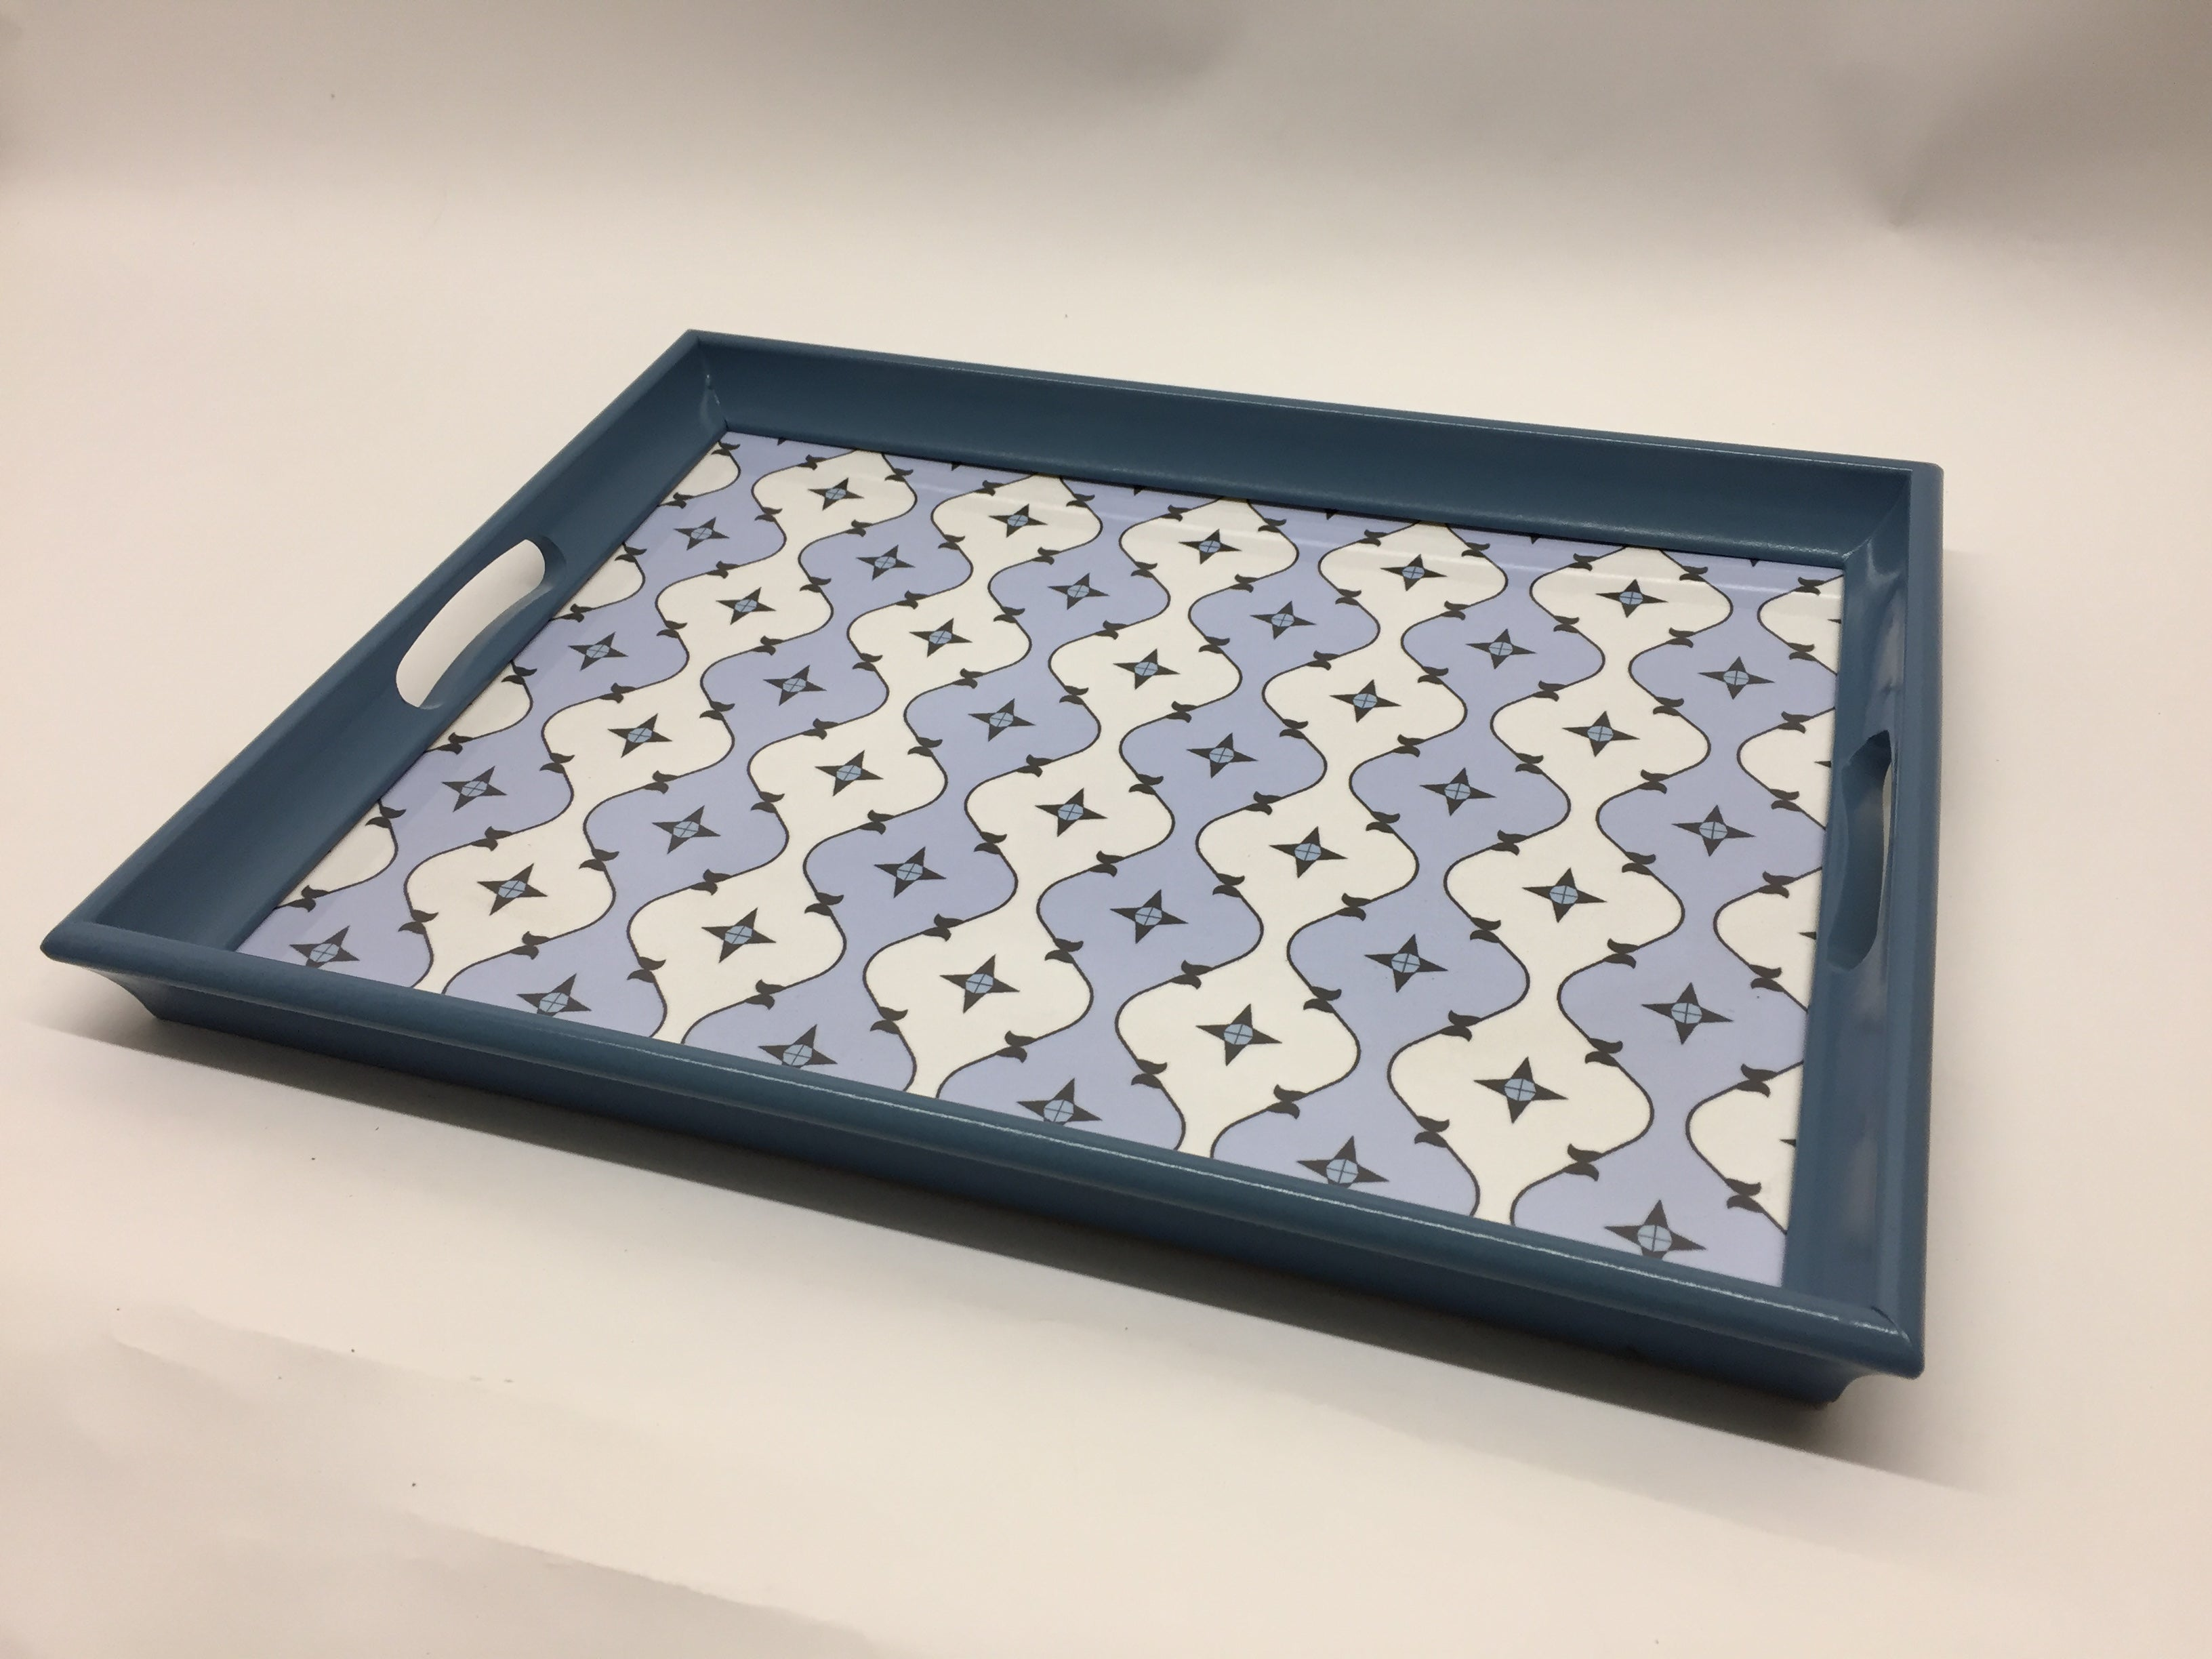 Geo Pale Blue Melamine Based Serving Tray